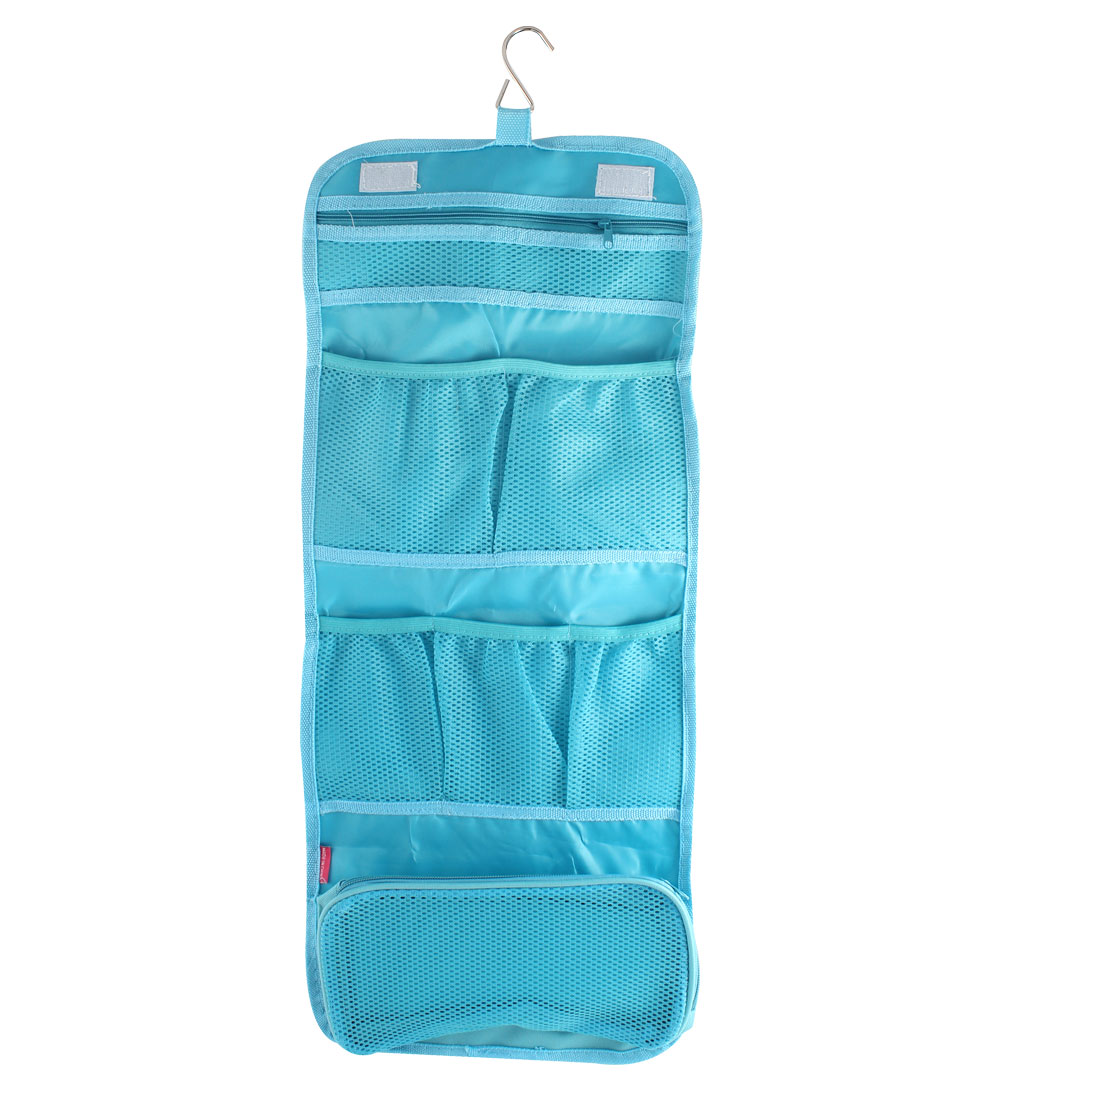 Outdoor Travel Blue Nylon Makeup Cosmetic Pouch Case Toiletry Storage Bag Organizer w Hanging Hook